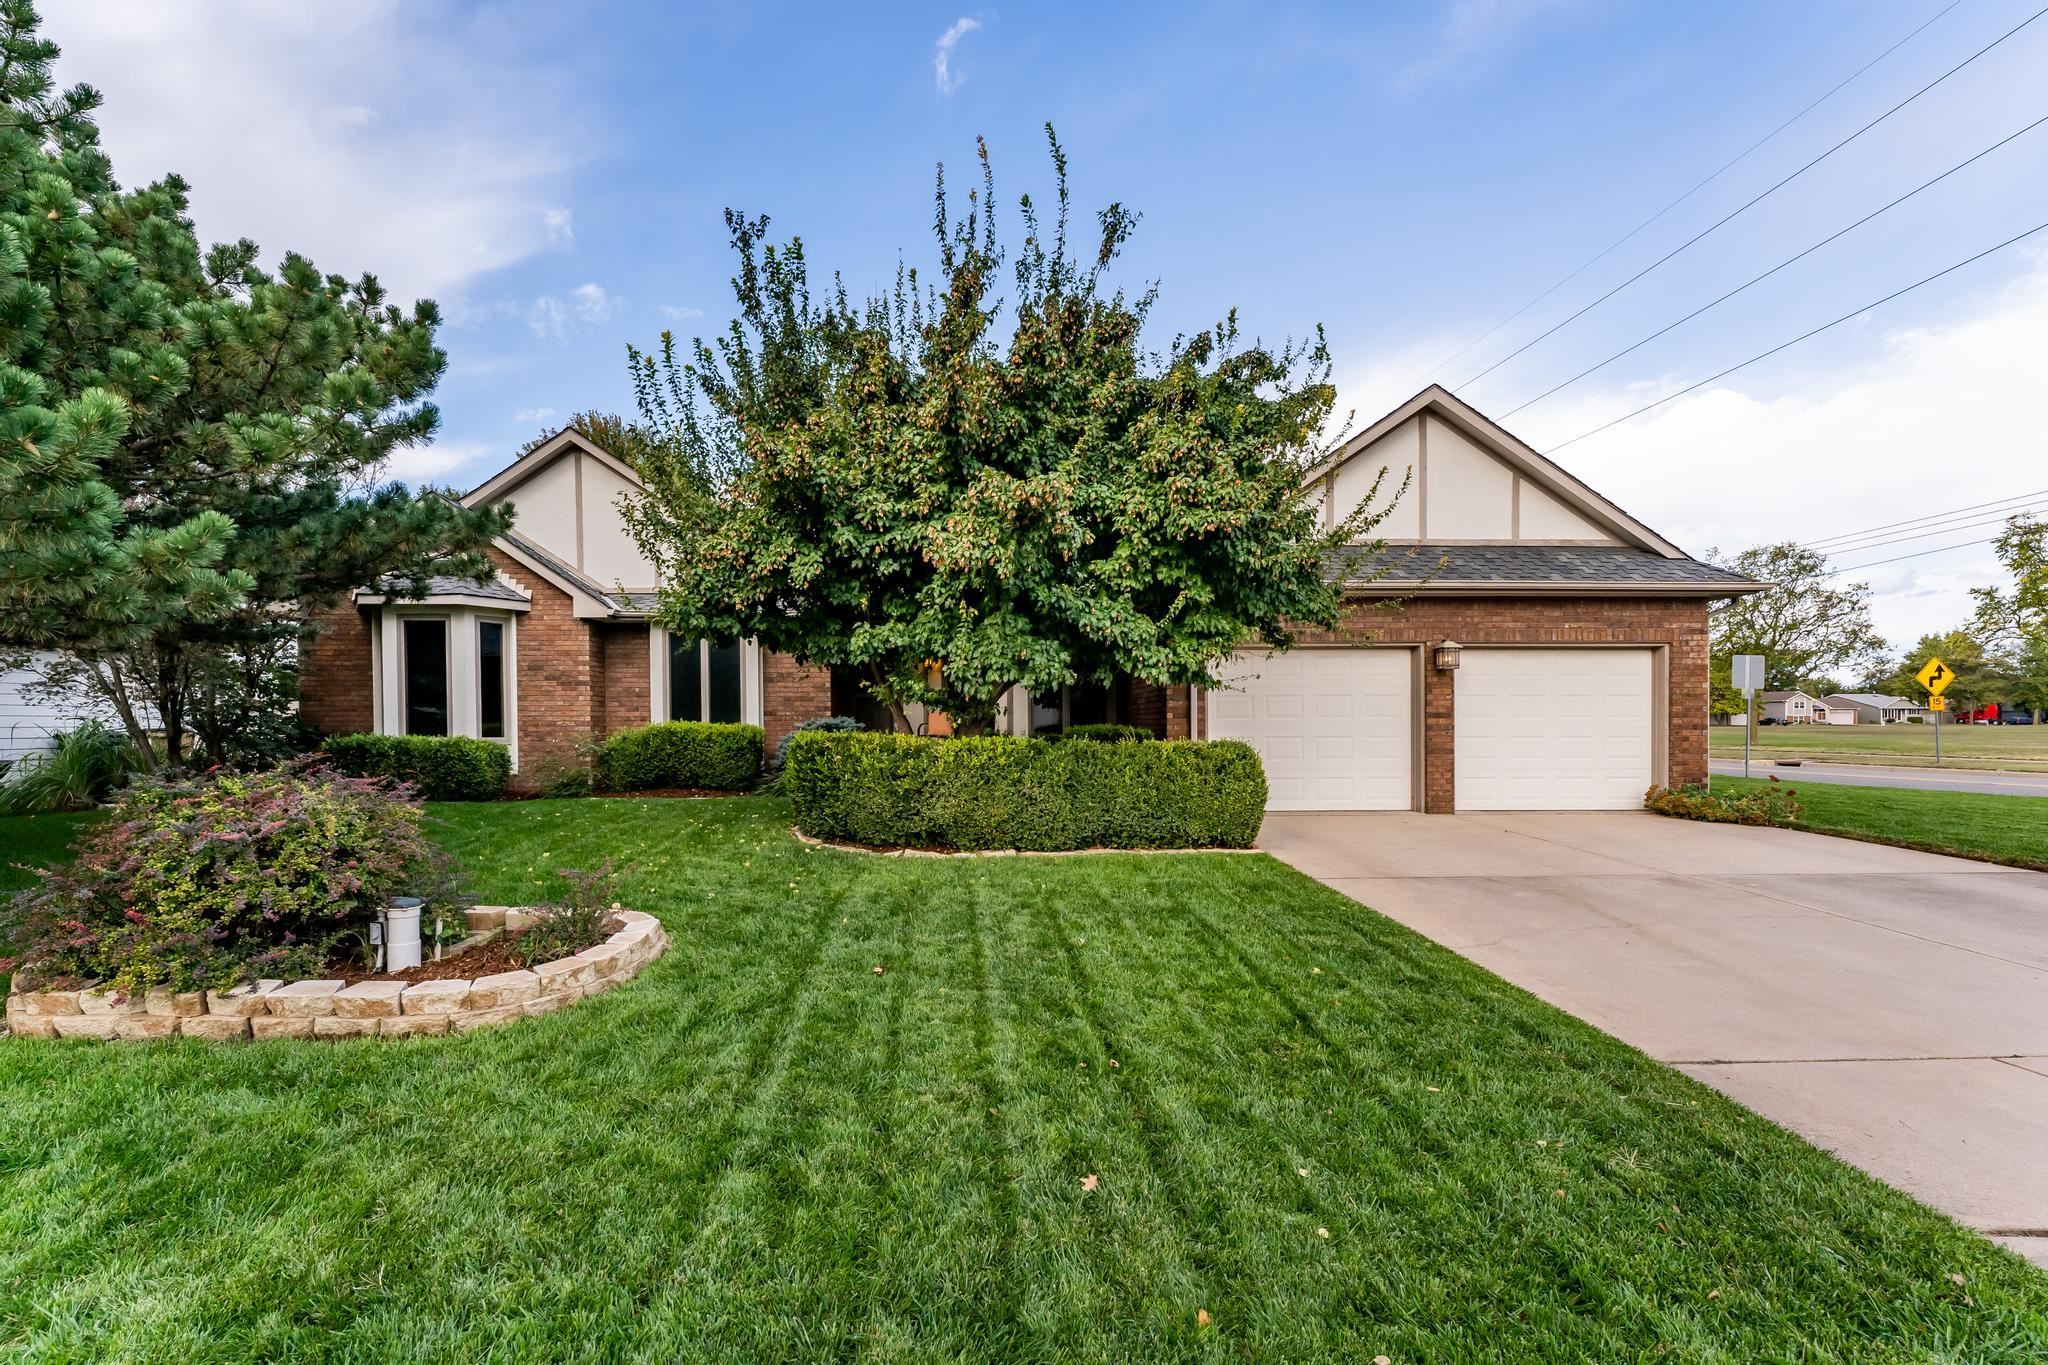 Looking for an impeccably well-maintained home in West Wichita? This is it! Admire the beautiful yar